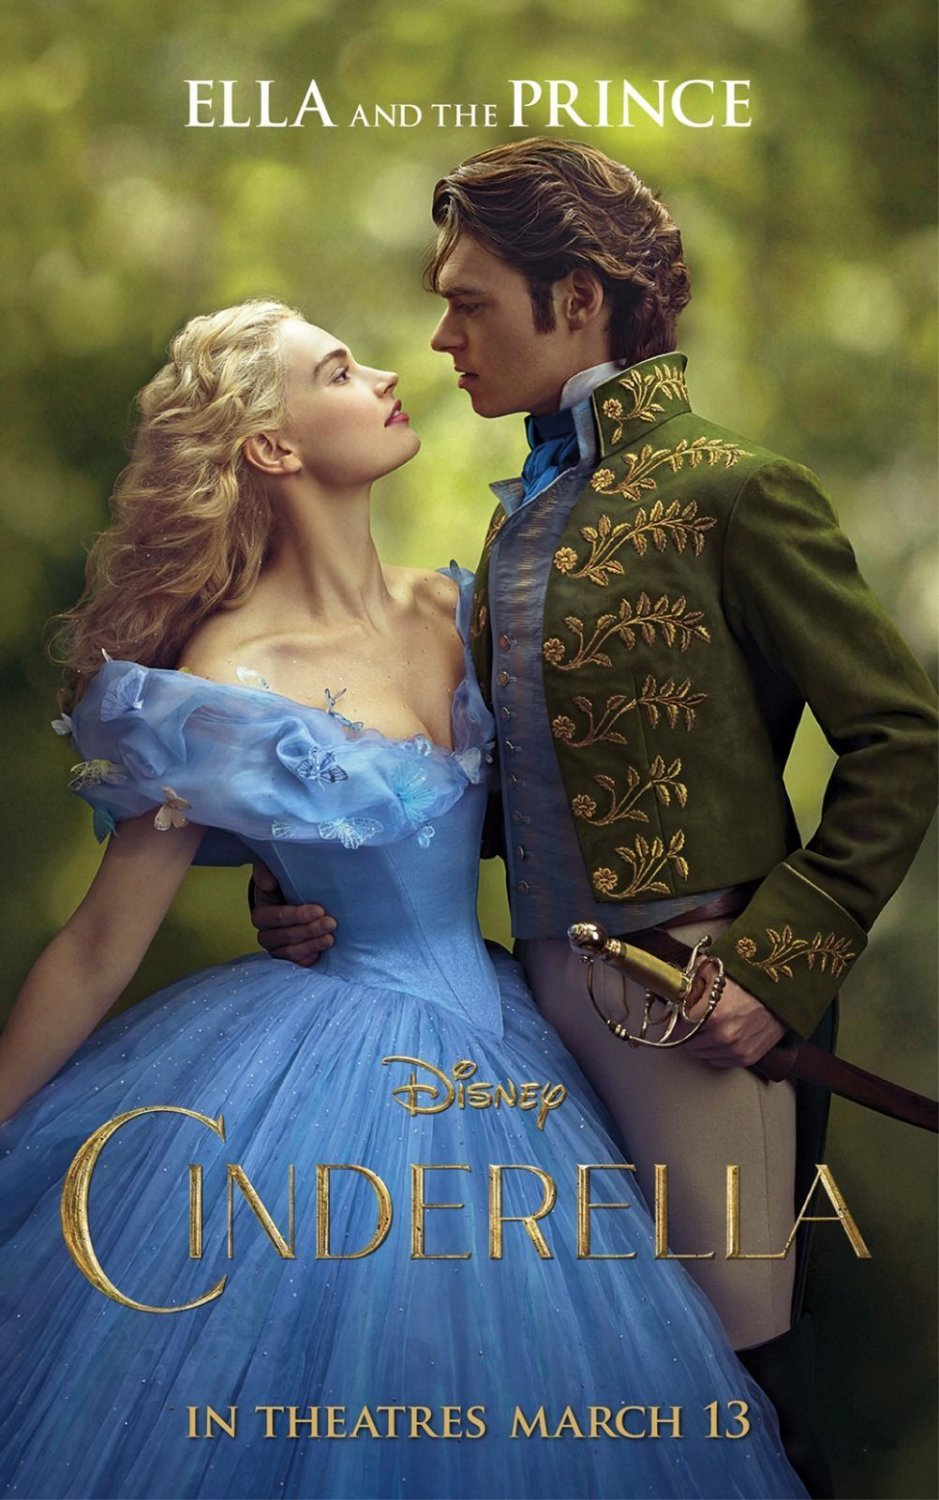 Cinderella 2015 Movie Art 32x24 Poster Decor